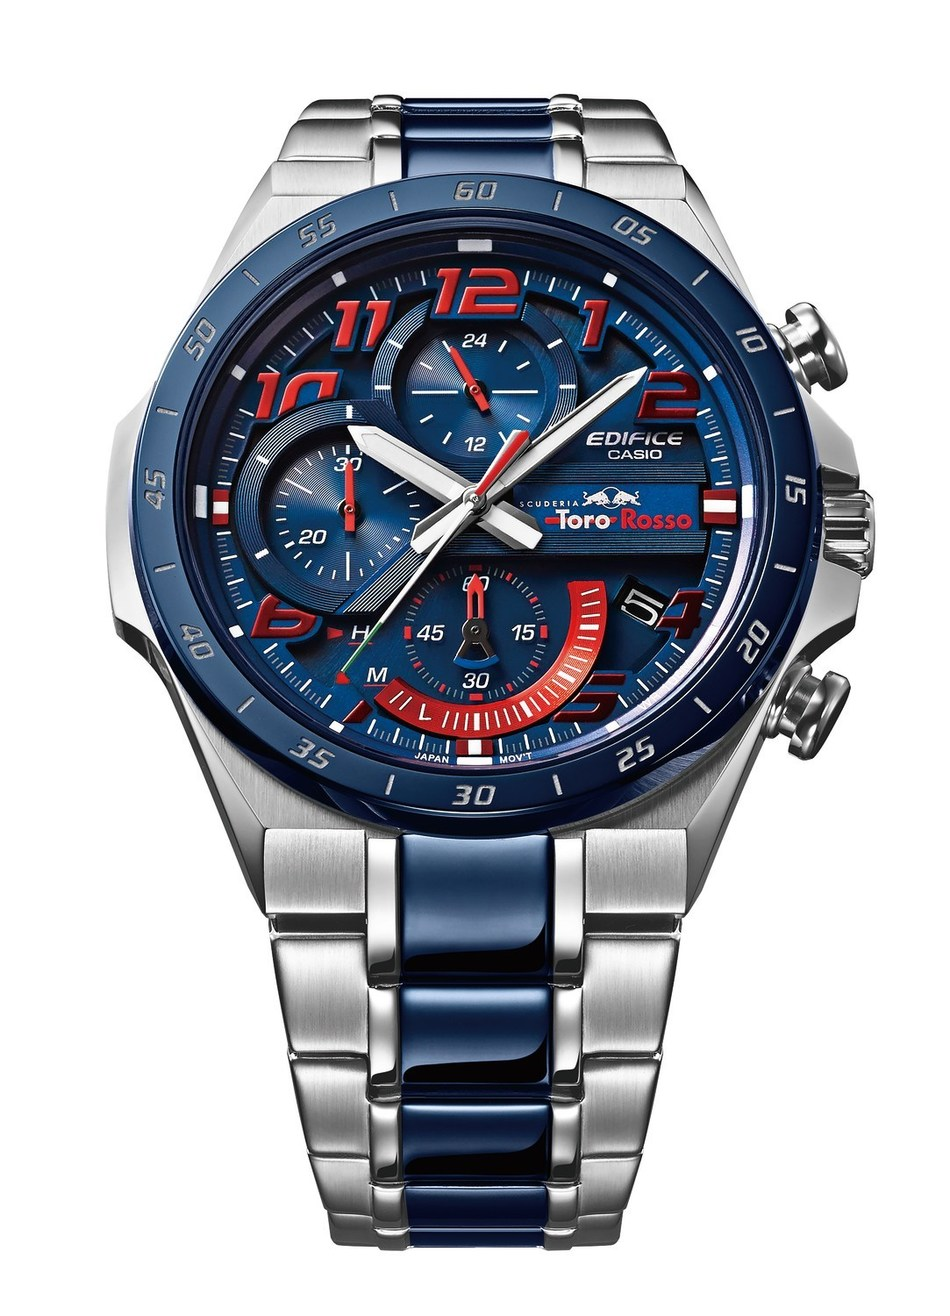 121cf7806d51 The new Casio EDIFICE Scuderia Toro Rosso Limited Edition chronograph EQS -920TR